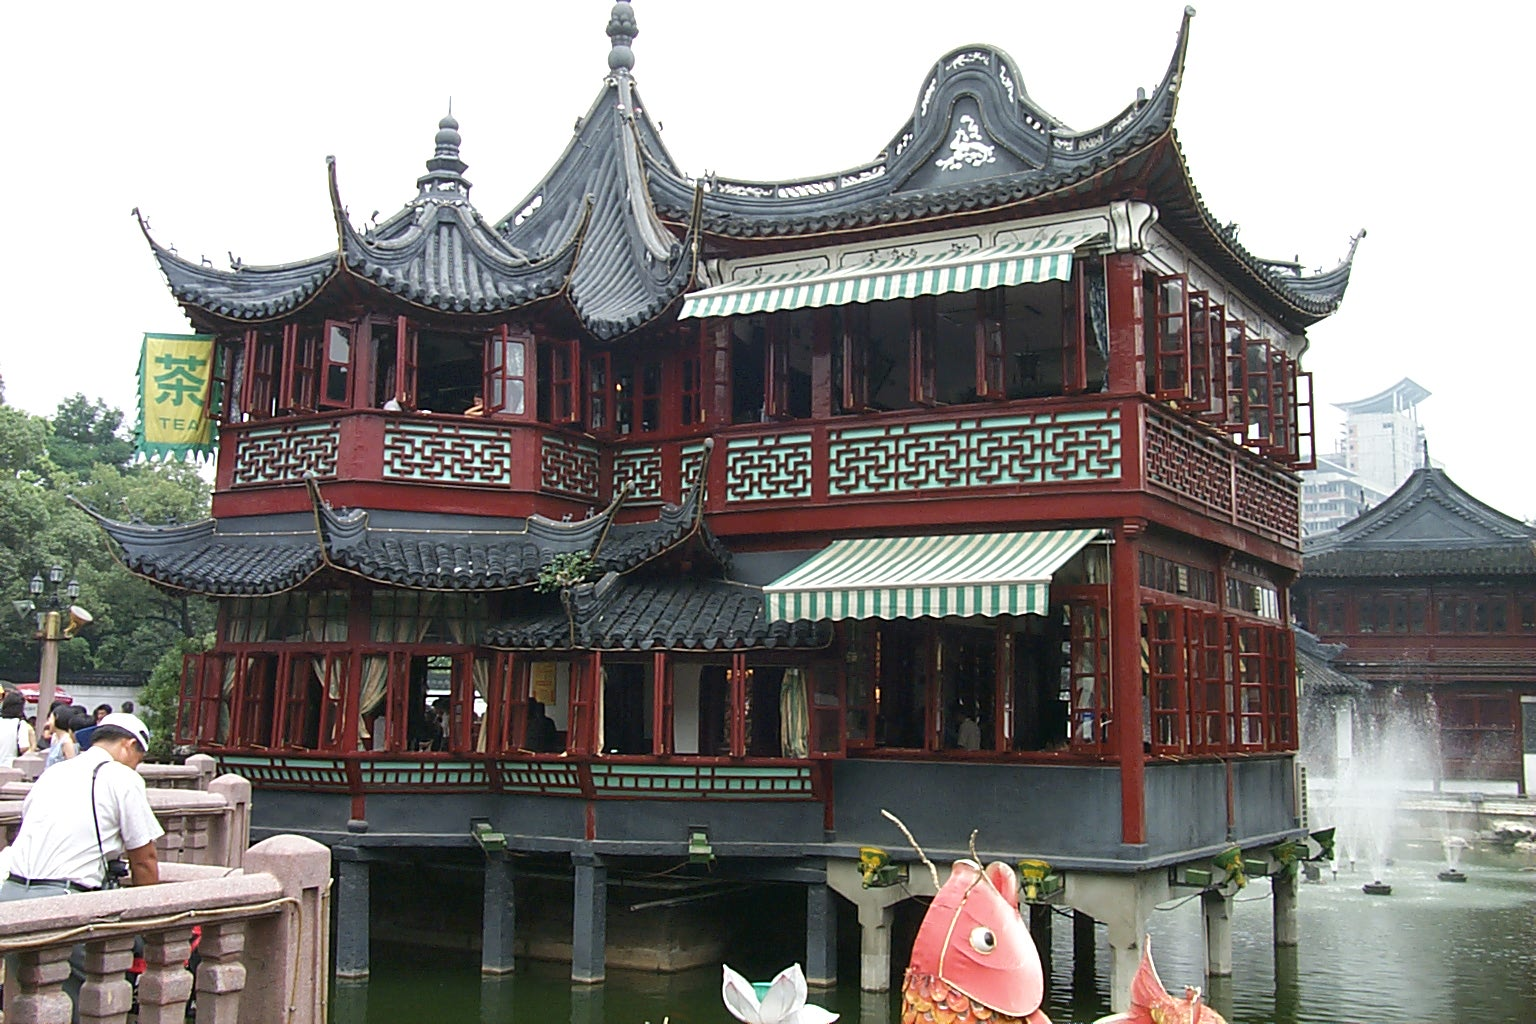 File:Shanghai Huxinting Tea House Gallery